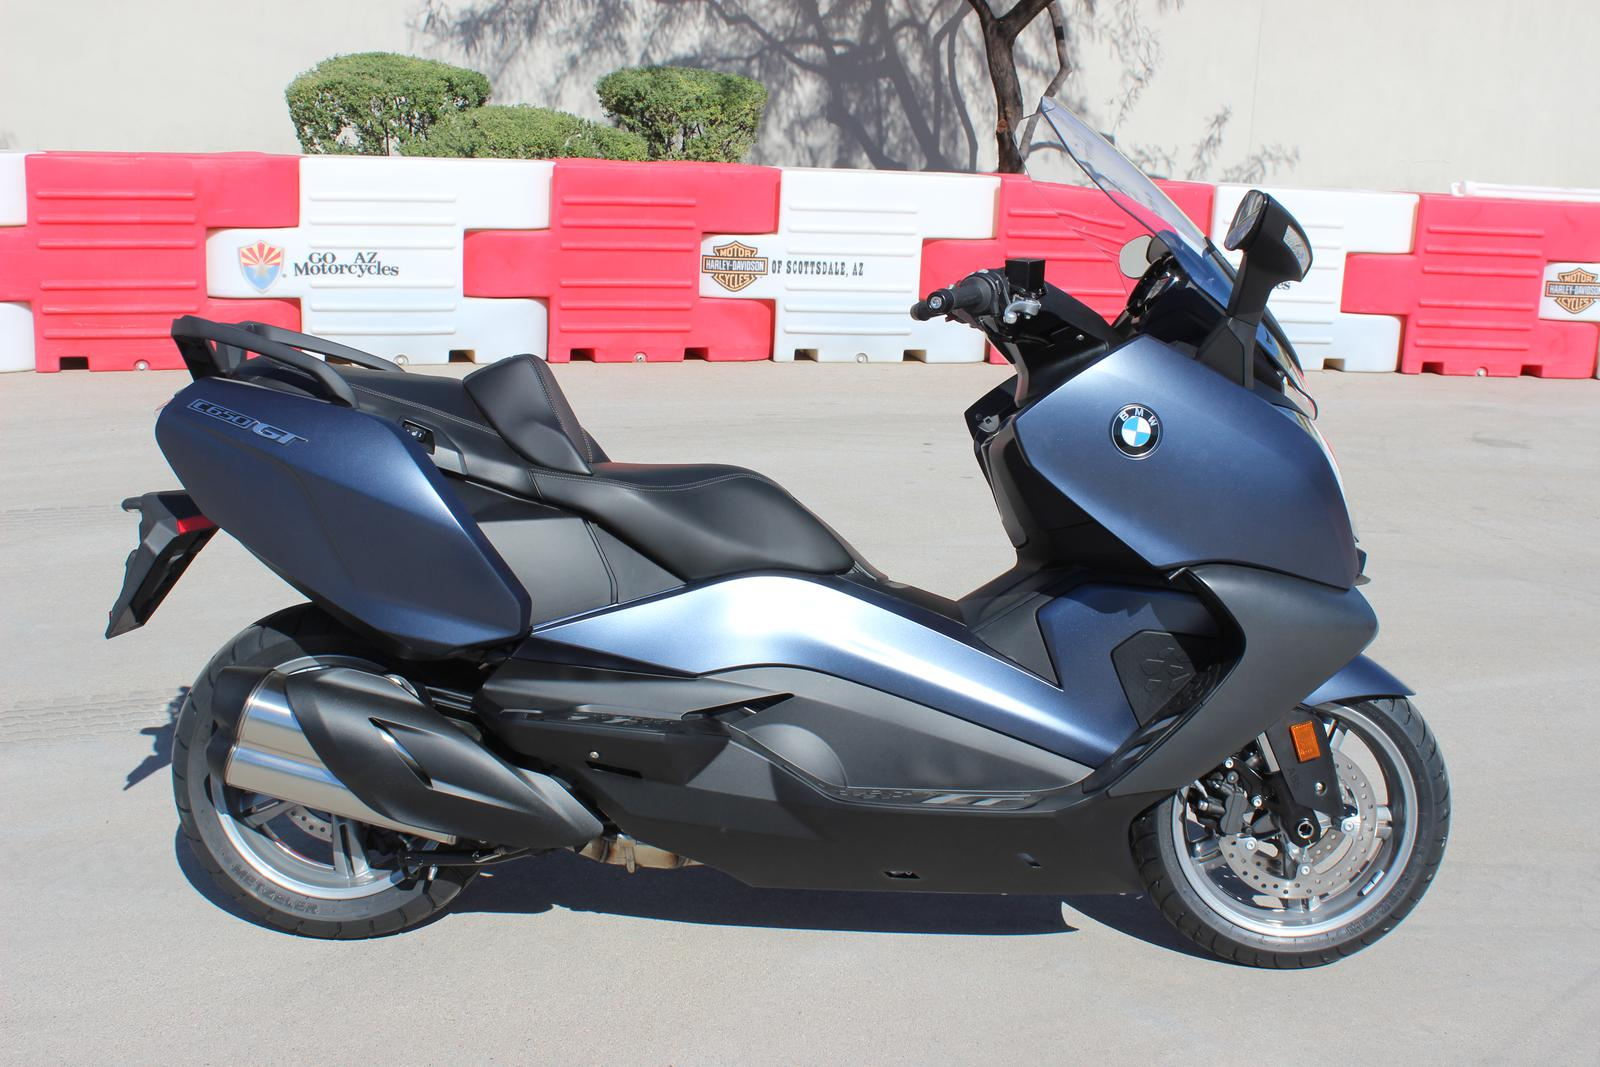 Inventory From Bmw Go Az Motorcycles In Scottsdale